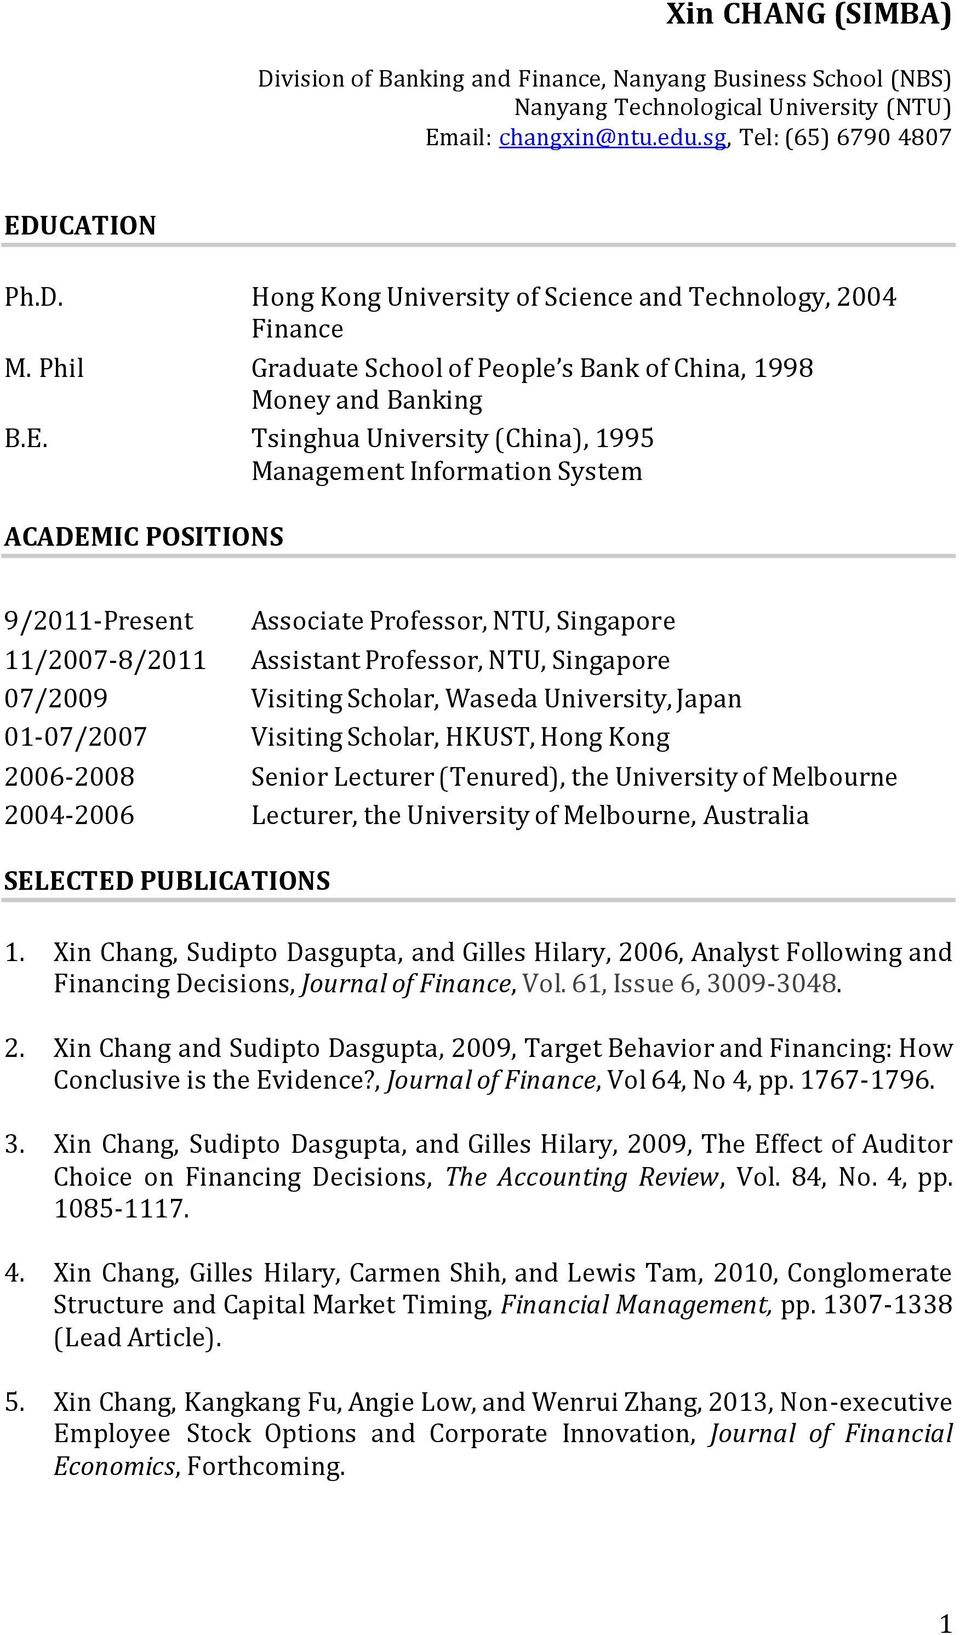 Tsinghua University (China), 1995 Management Information System ACADEMIC POSITIONS 9/2011-Present Associate Professor, NTU, Singapore 11/2007-8/2011 Assistant Professor, NTU, Singapore 07/2009